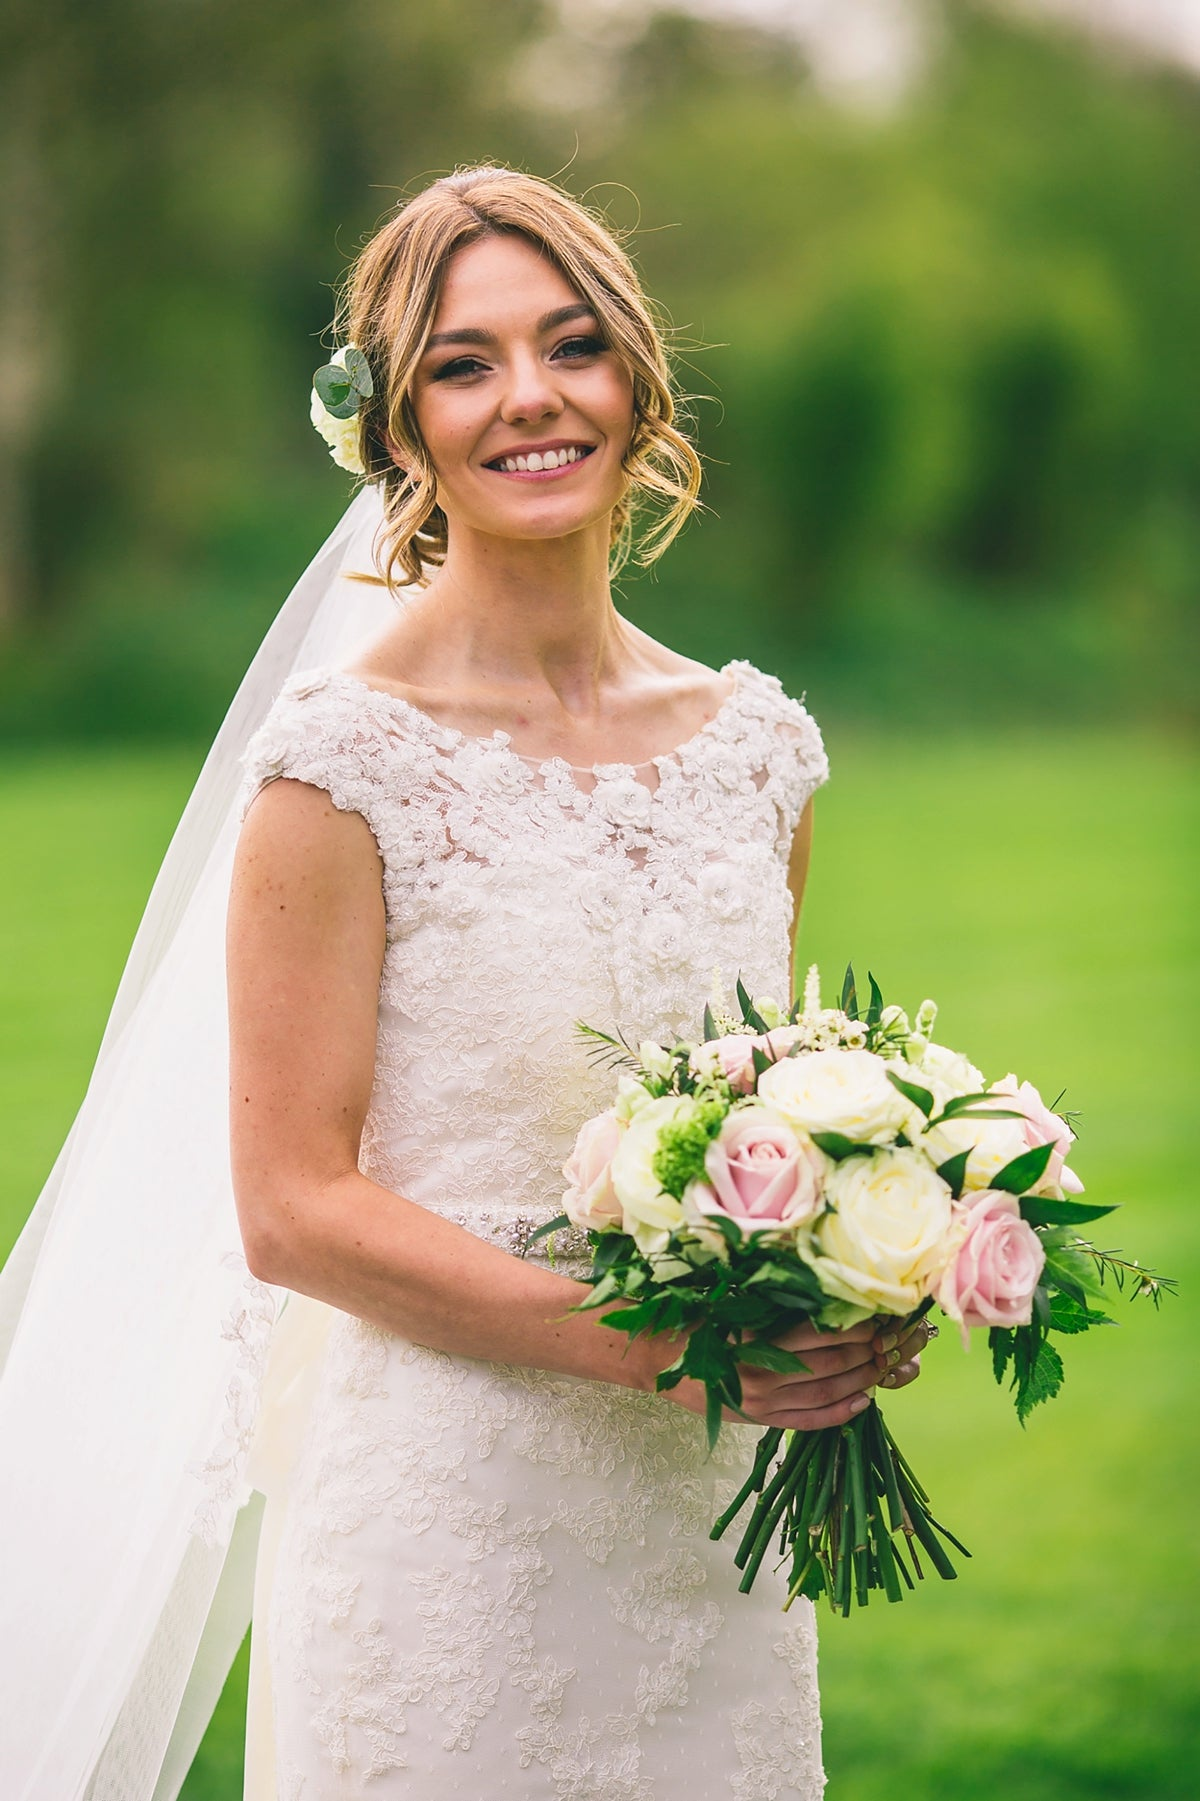 Lace flower motif wedding veil - Paisley - Britten Bride - Jodie